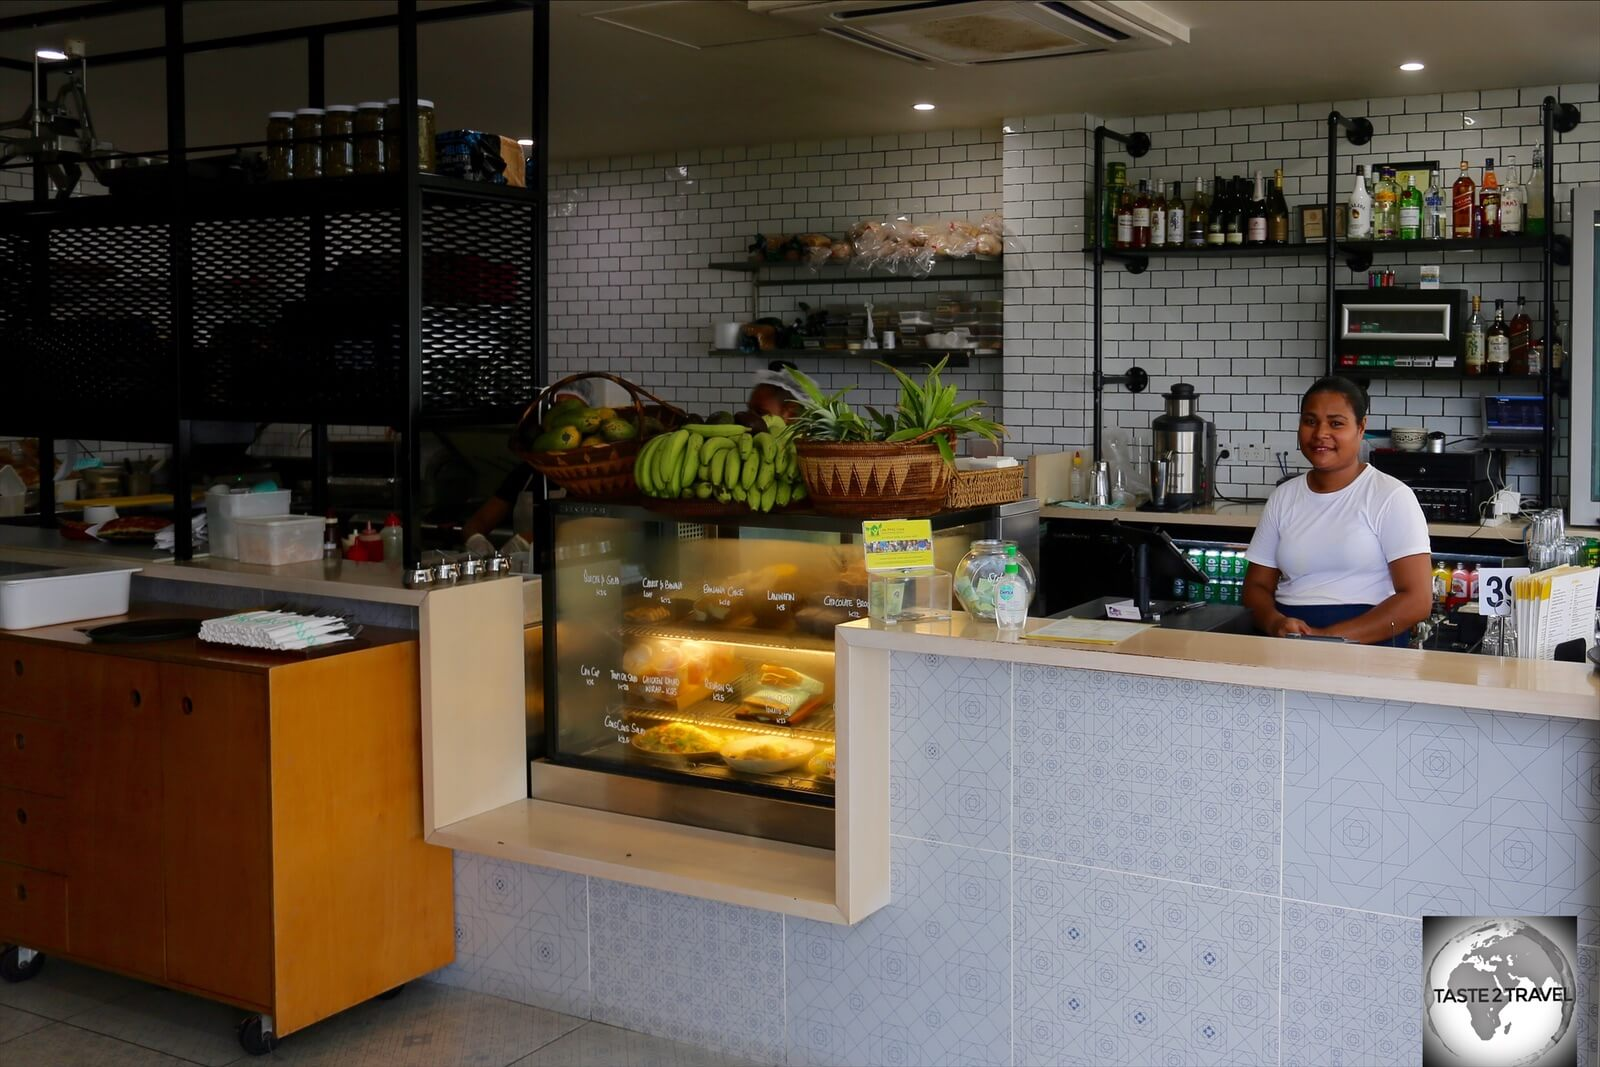 The 'Edge by the Sea' café is a favourite choice for expats and visitors.